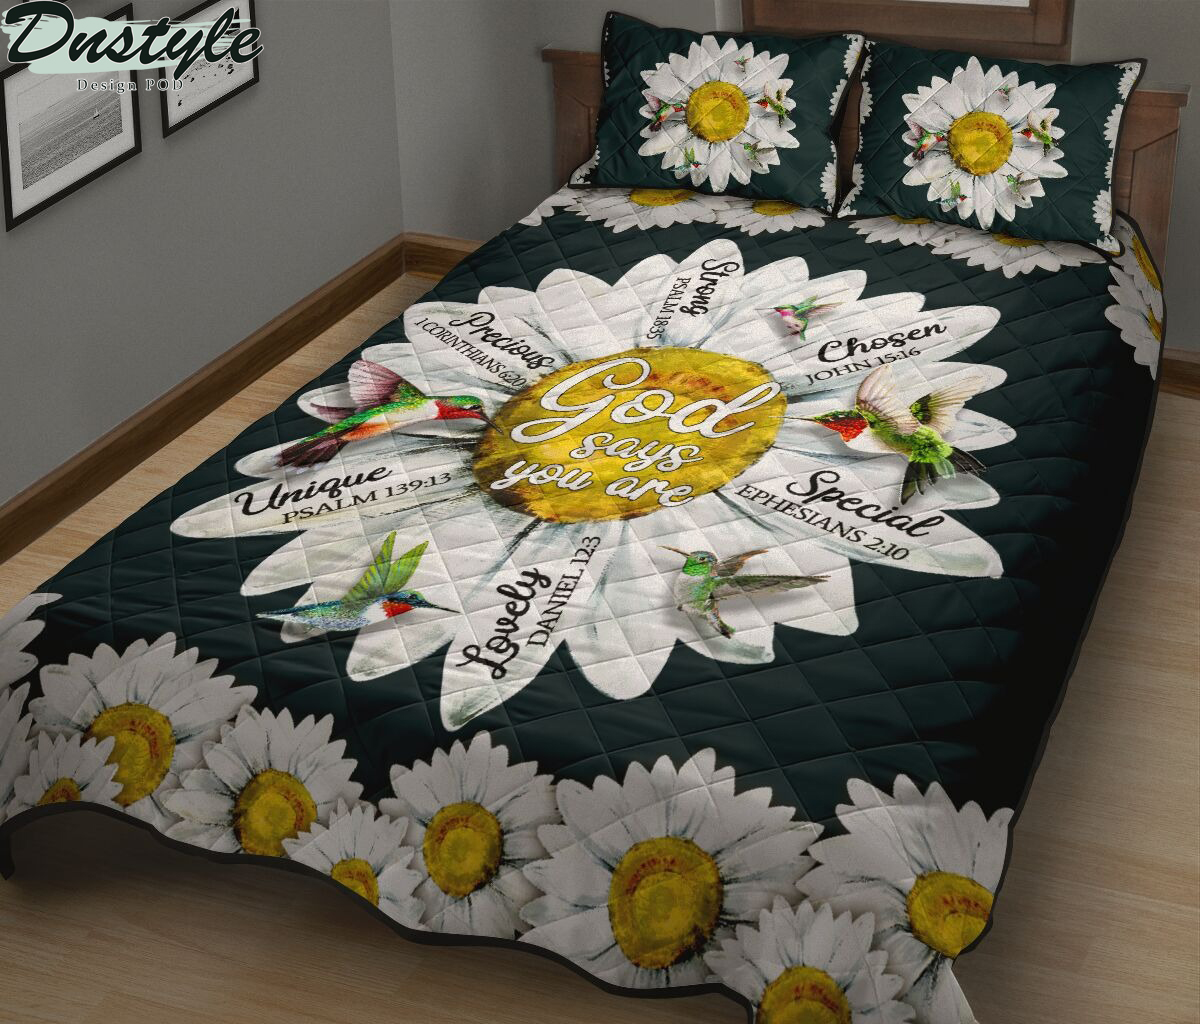 Hummingbird daisy god says you are quilt bed set 1